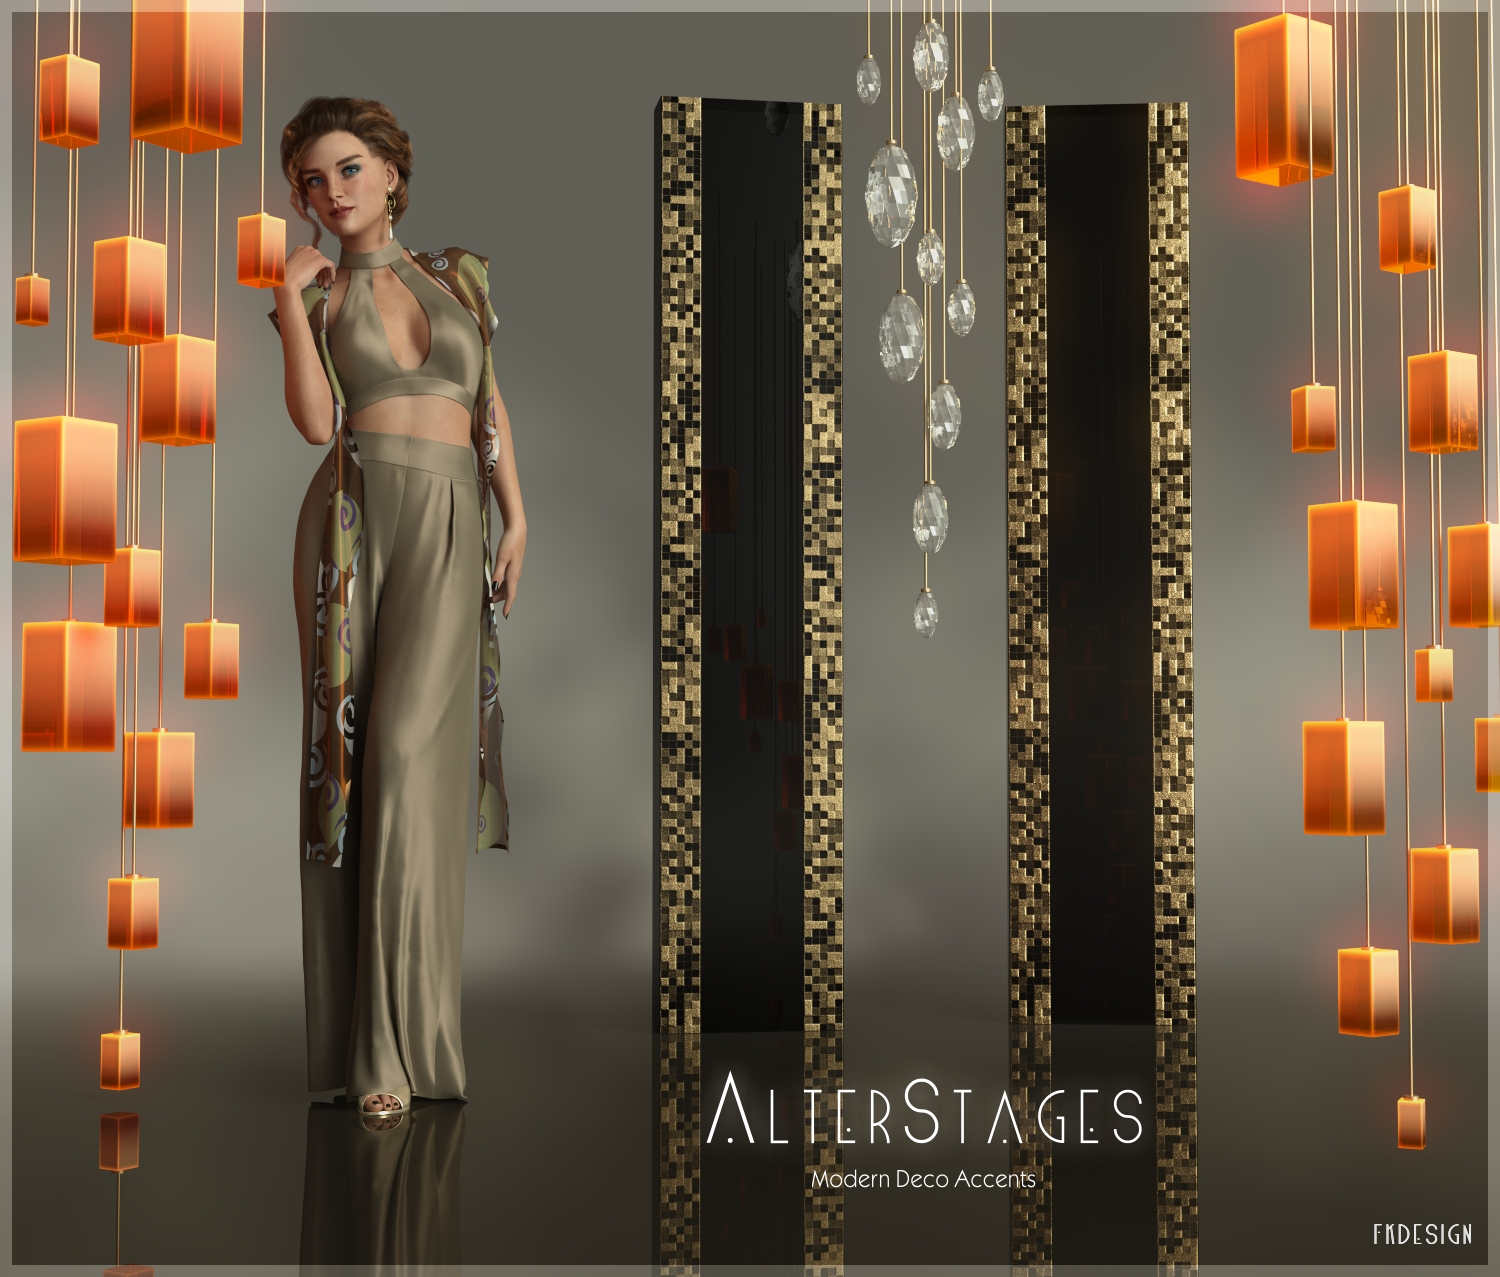 AlterStages - Modern Deco Accents by fabiana